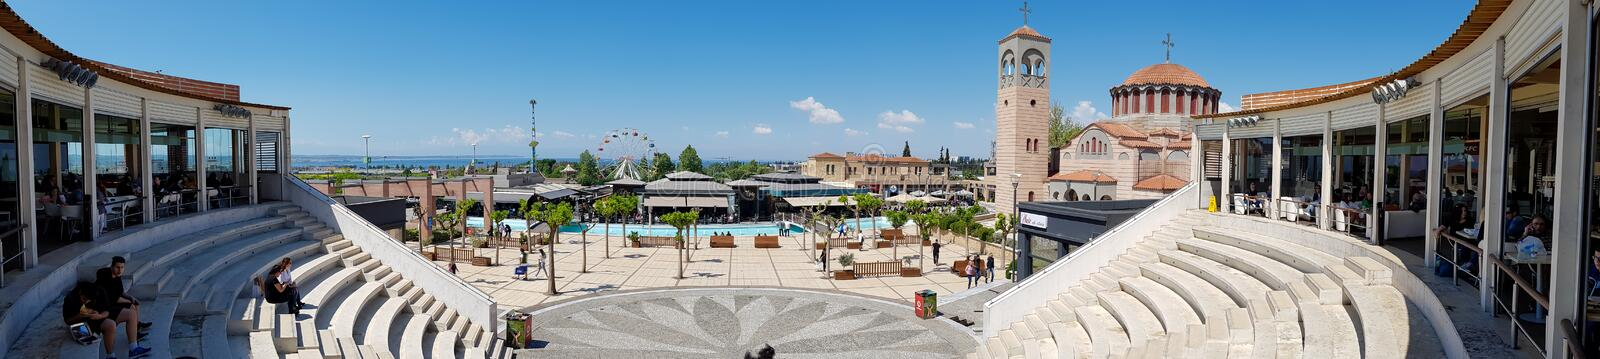 Panorama of a square with pool and coffee shops outside of shopping mall in Thessaloniki,  Greece. royalty free stock image